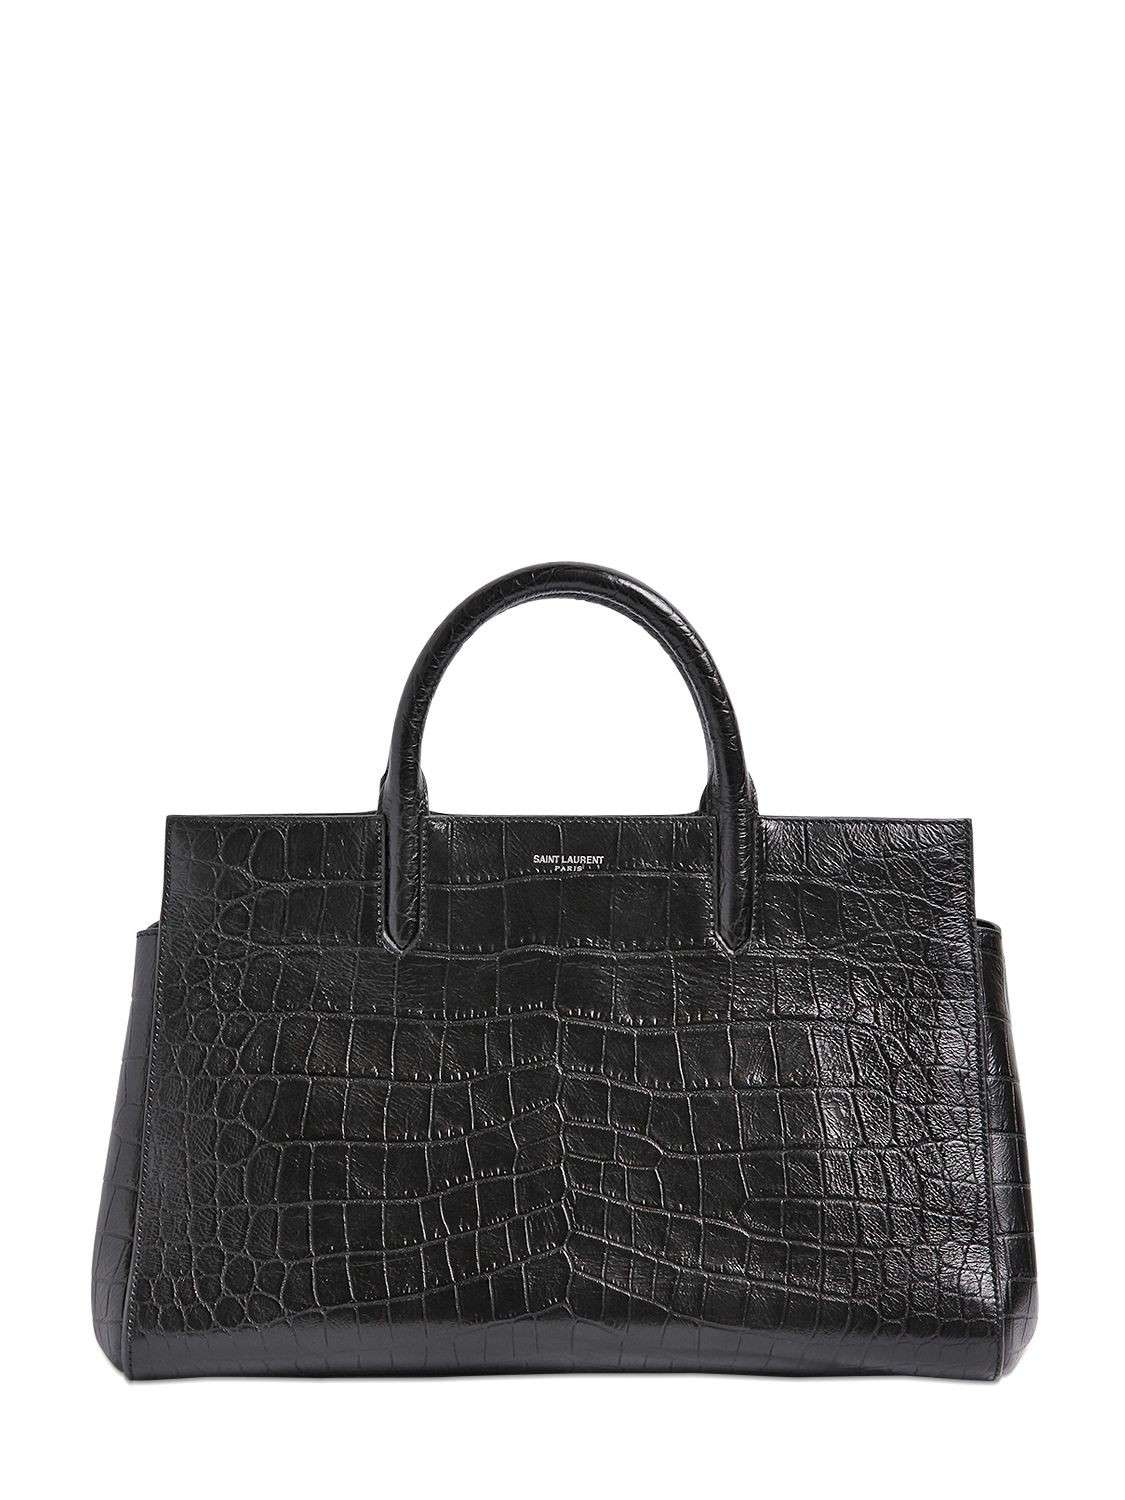 Handbag nera stampa coccodrillo Saint Laurent